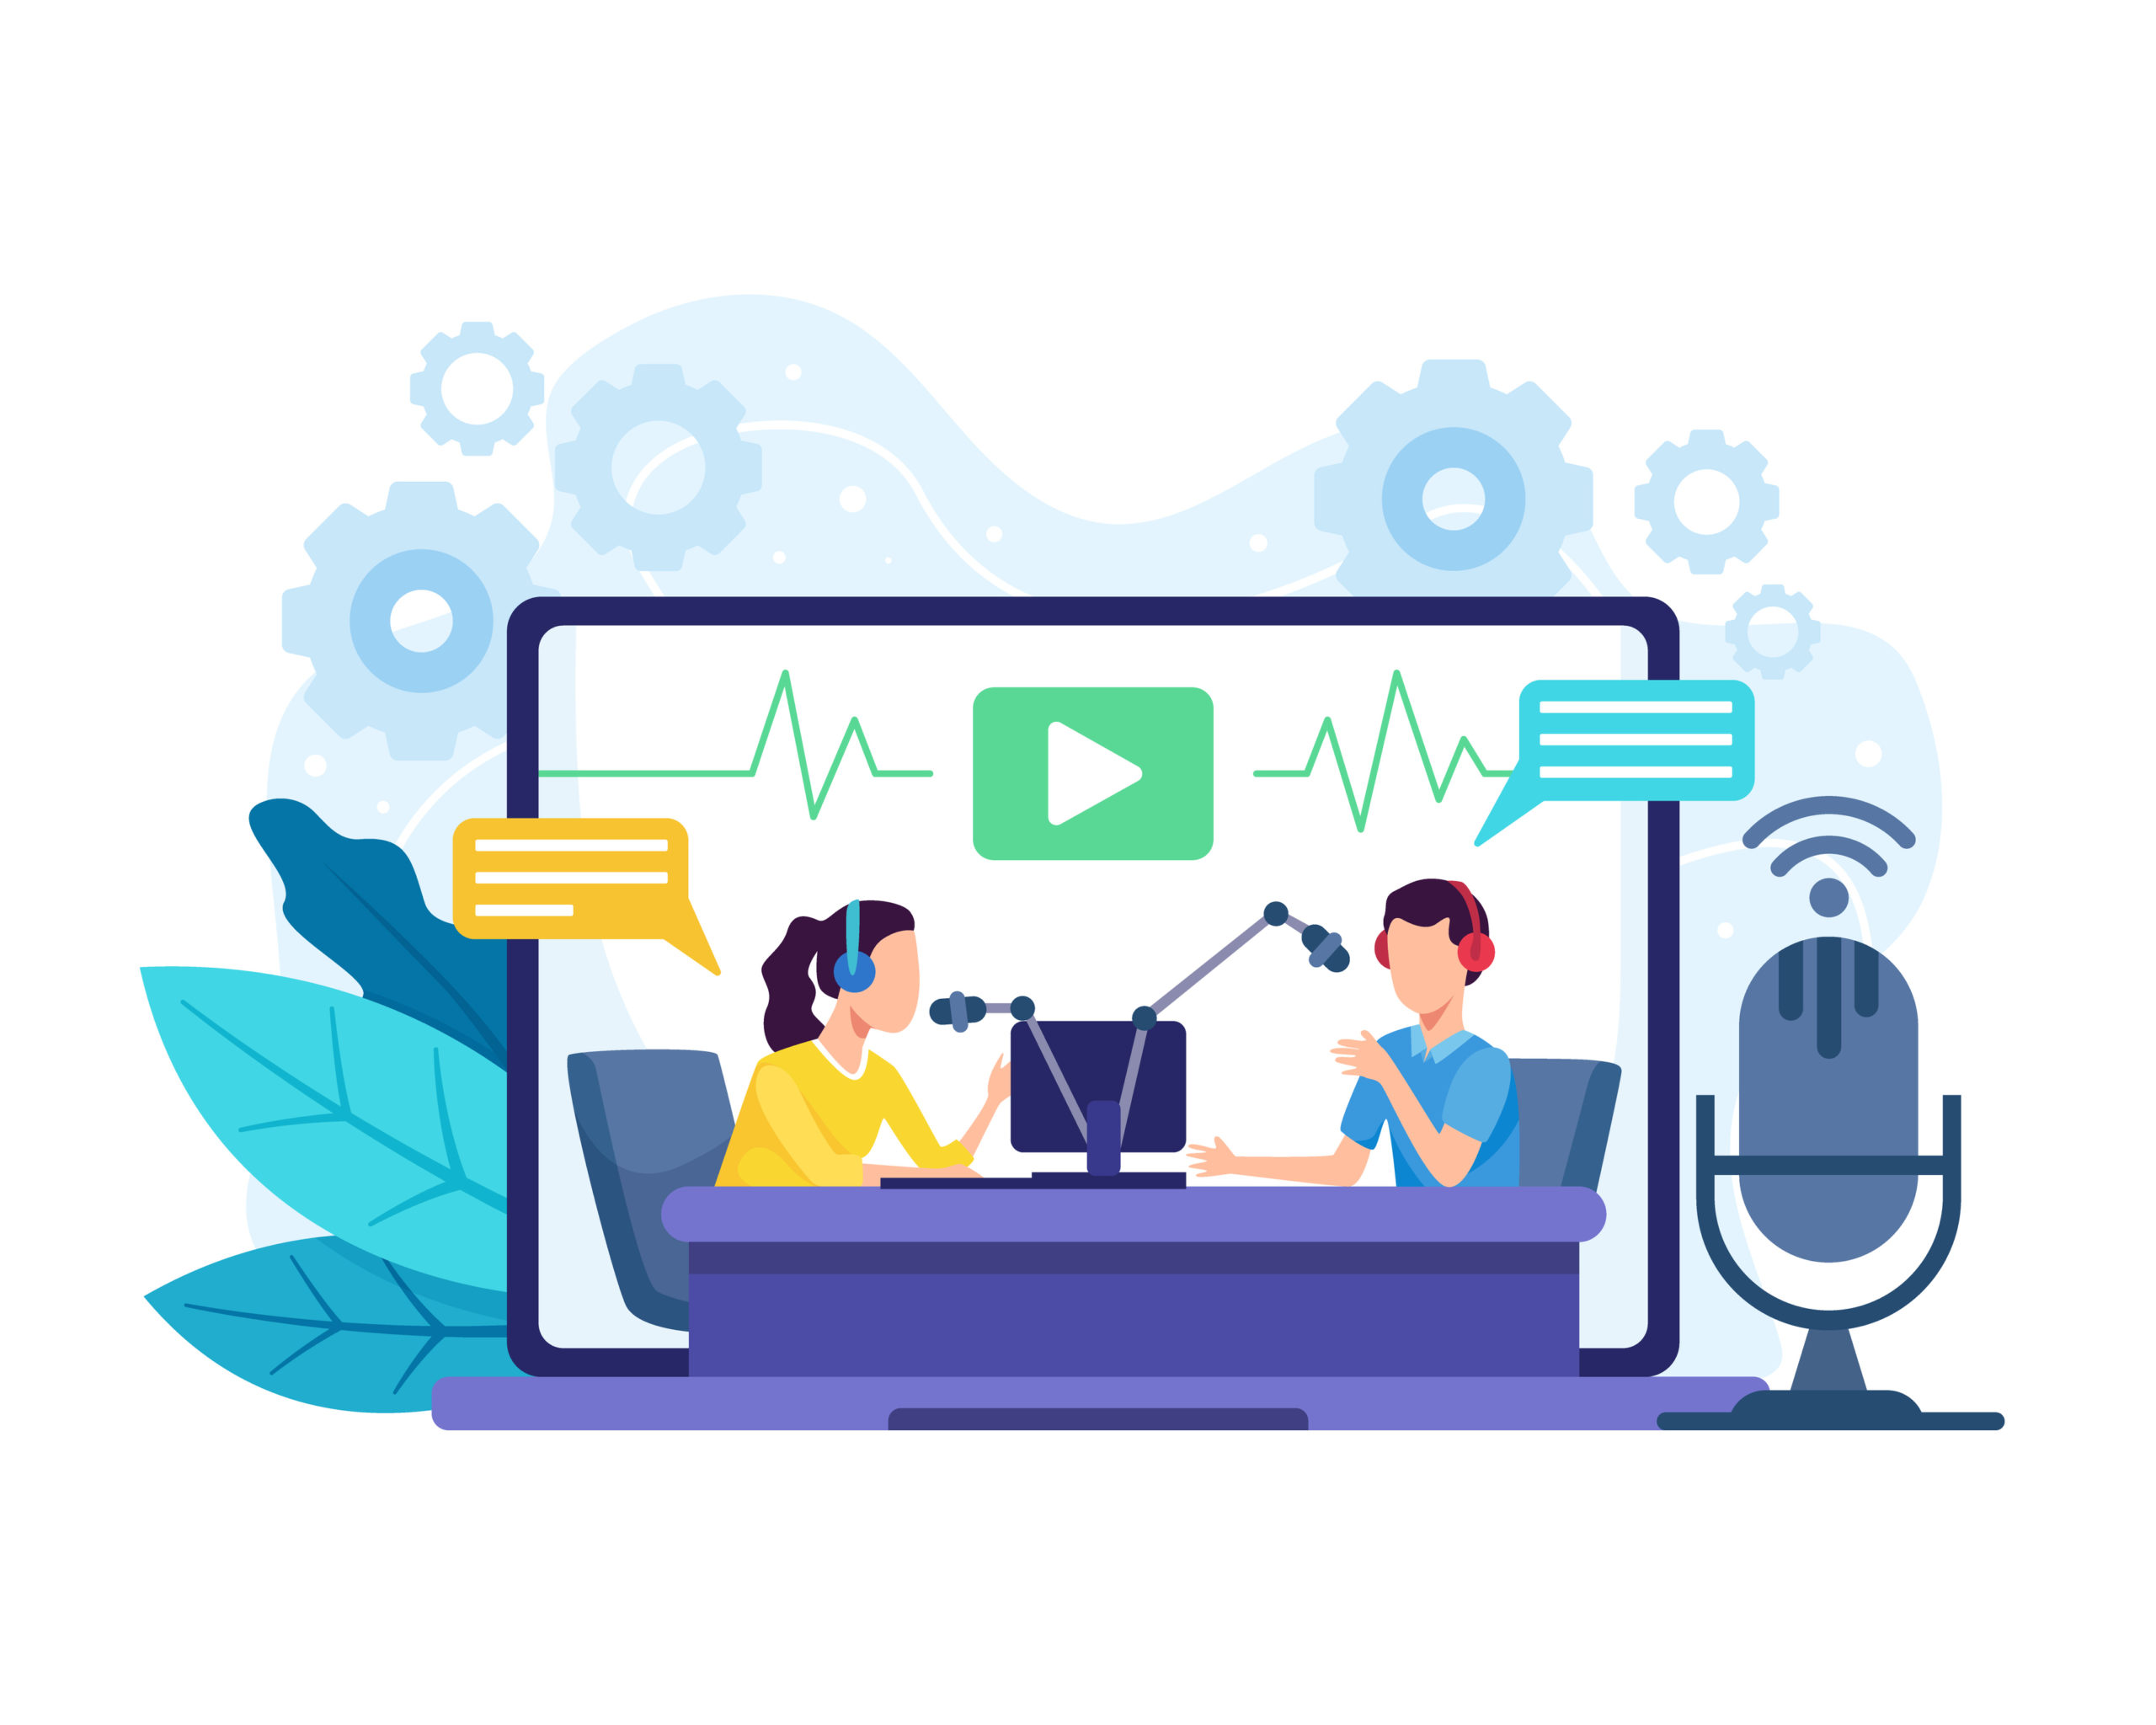 Female radio host interviewing guests on radio station. Podcast in studio flat vector illustration. Man and women in the laptop wearing headphones talking